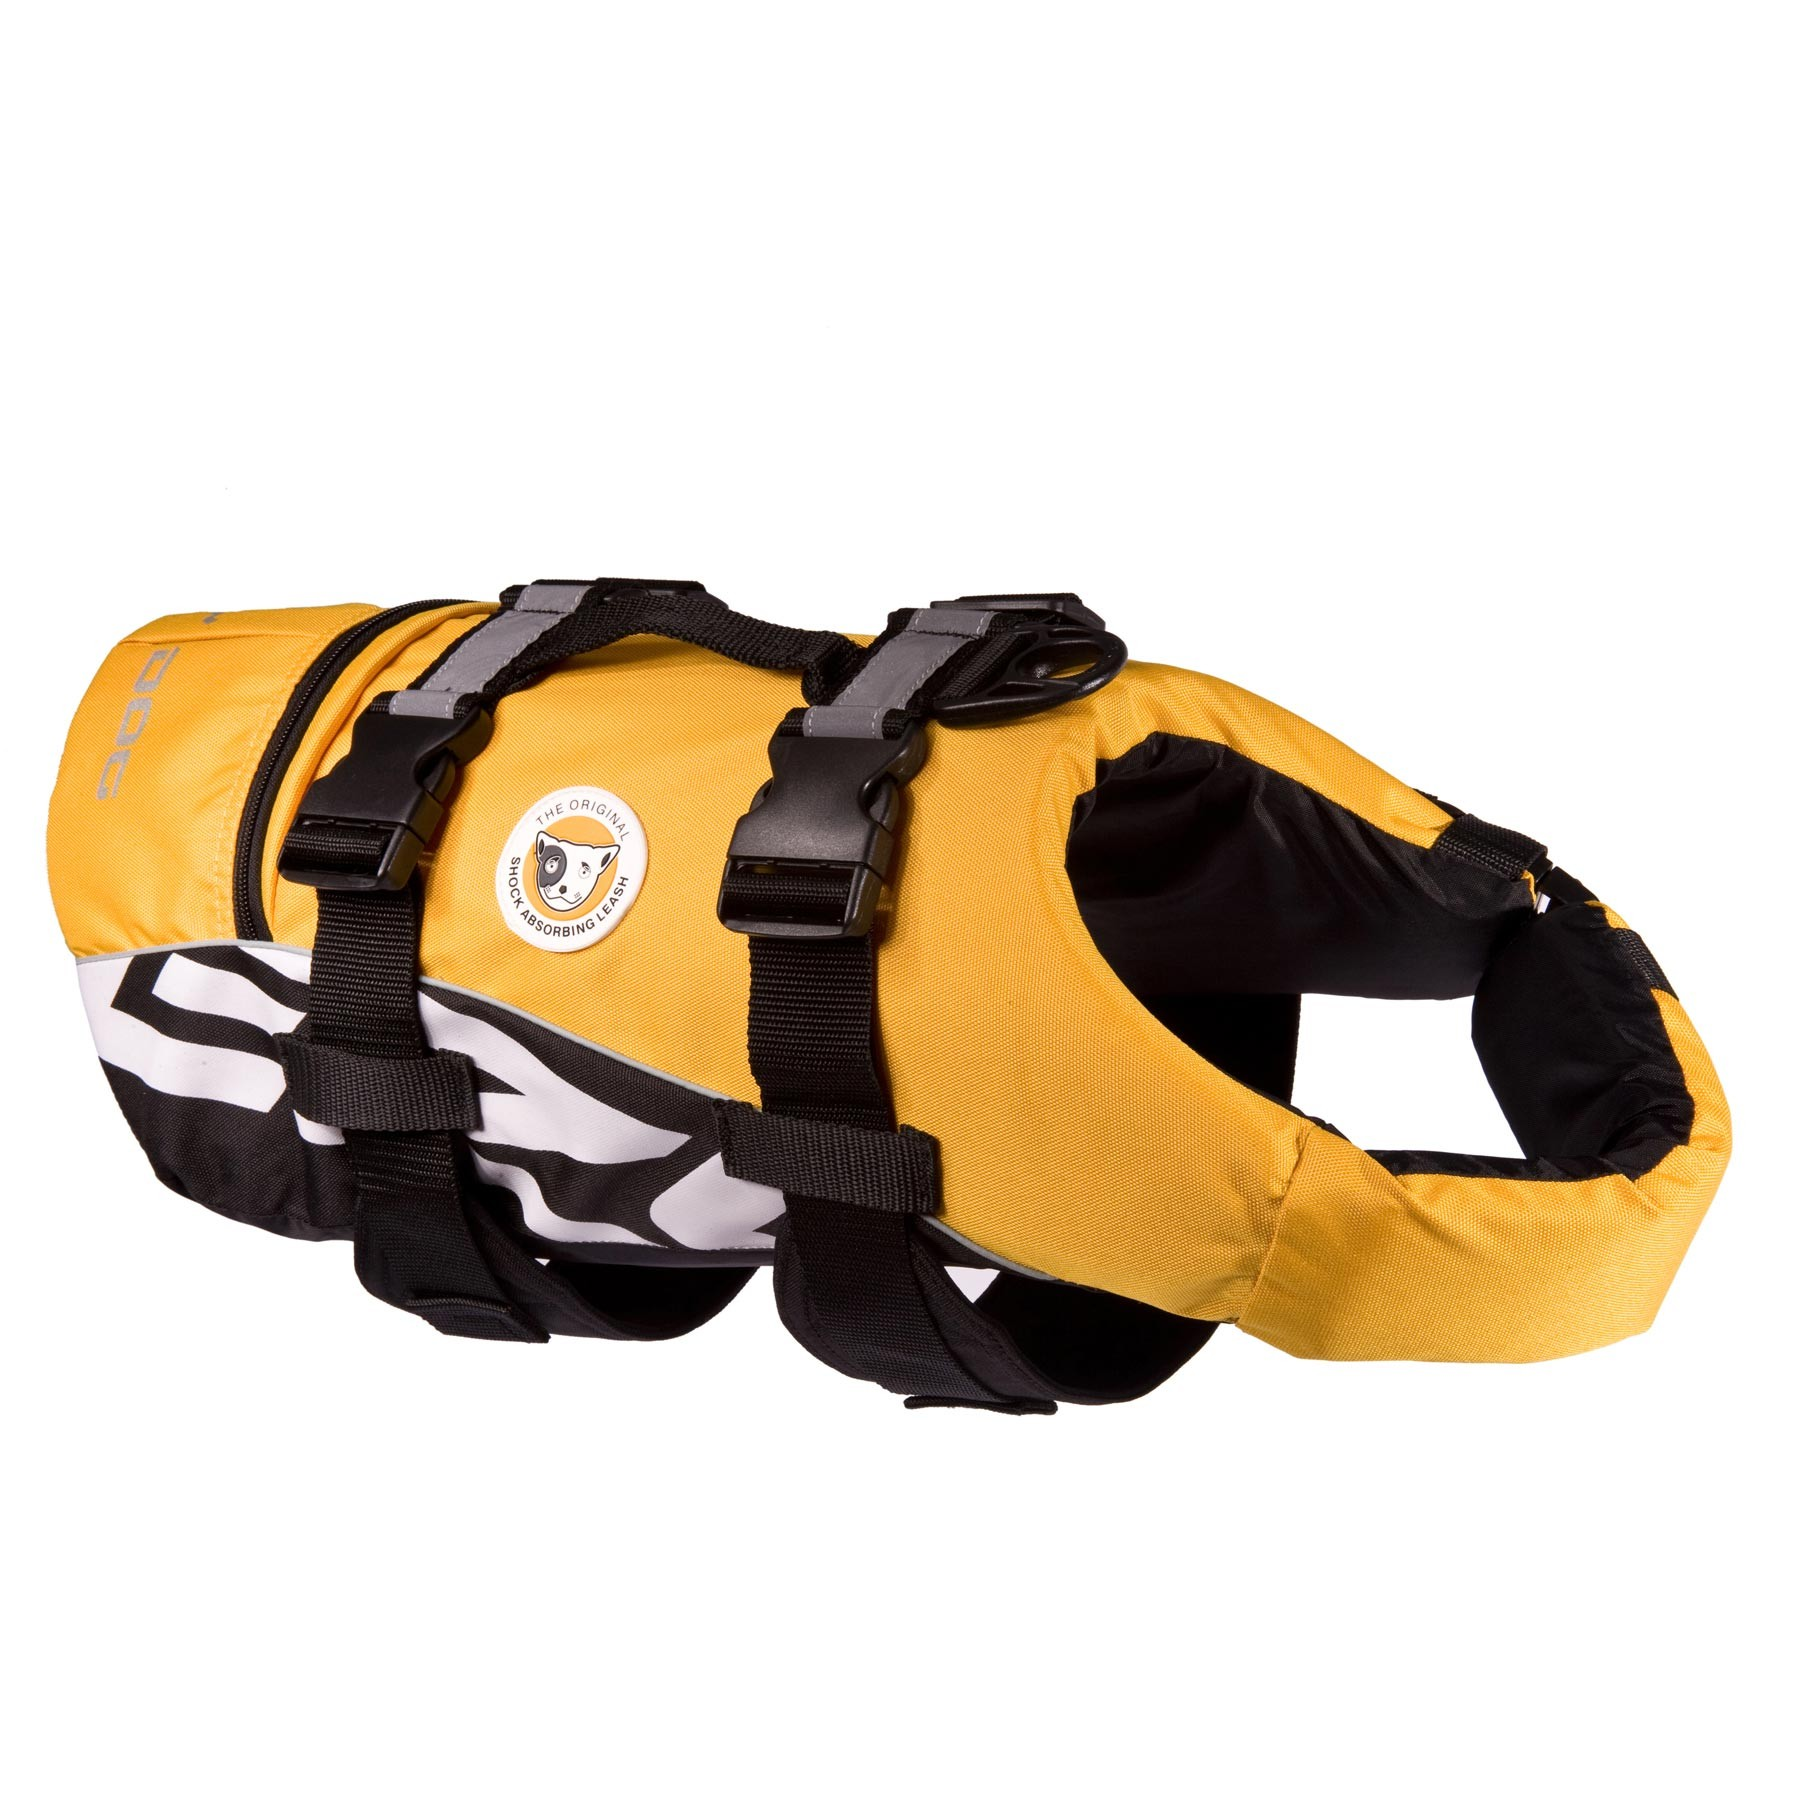 DFD Dog Flotation Device